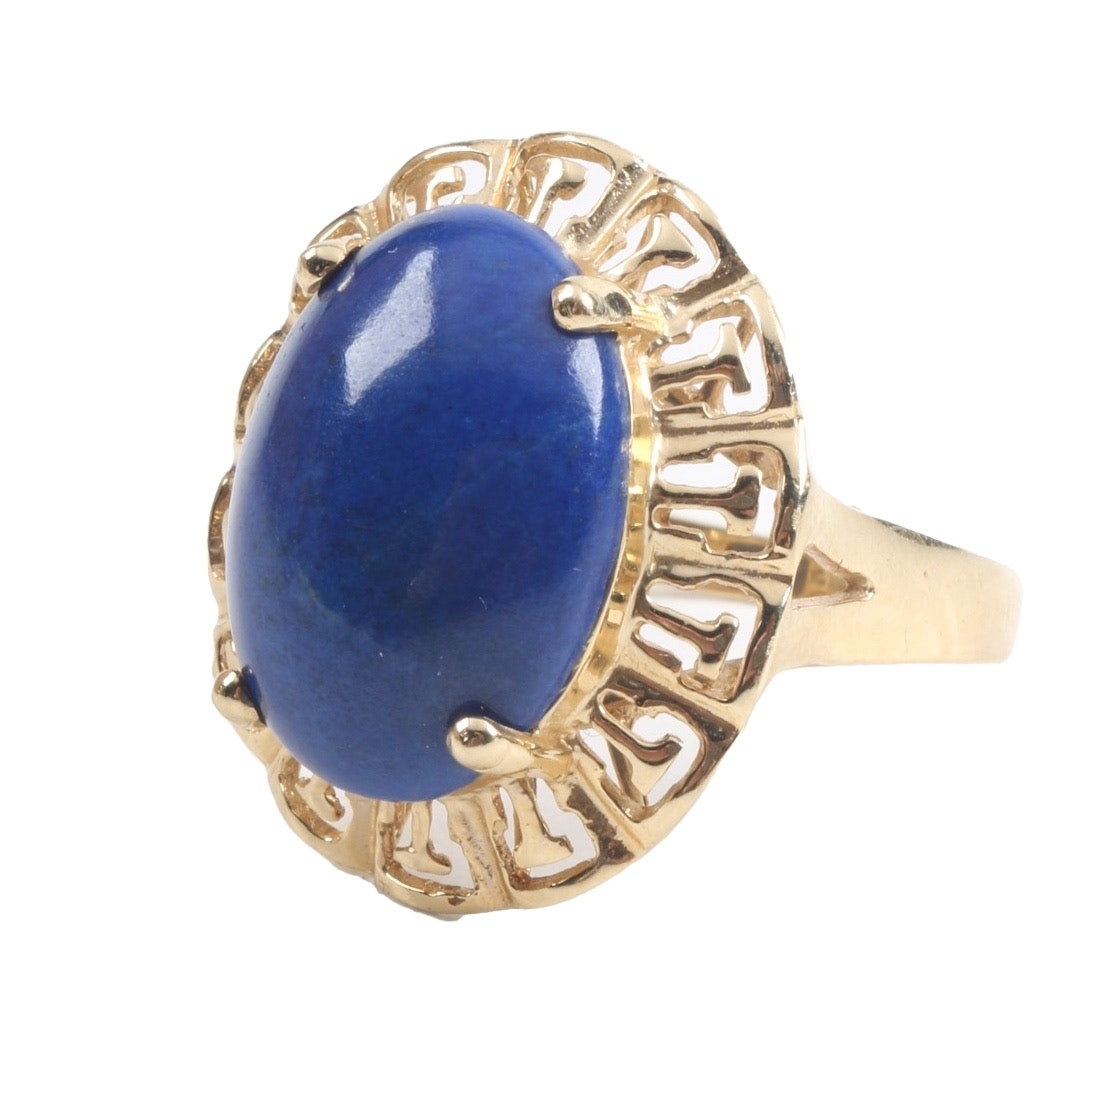 14K Yellow Gold and Lapis Lazuli Ring